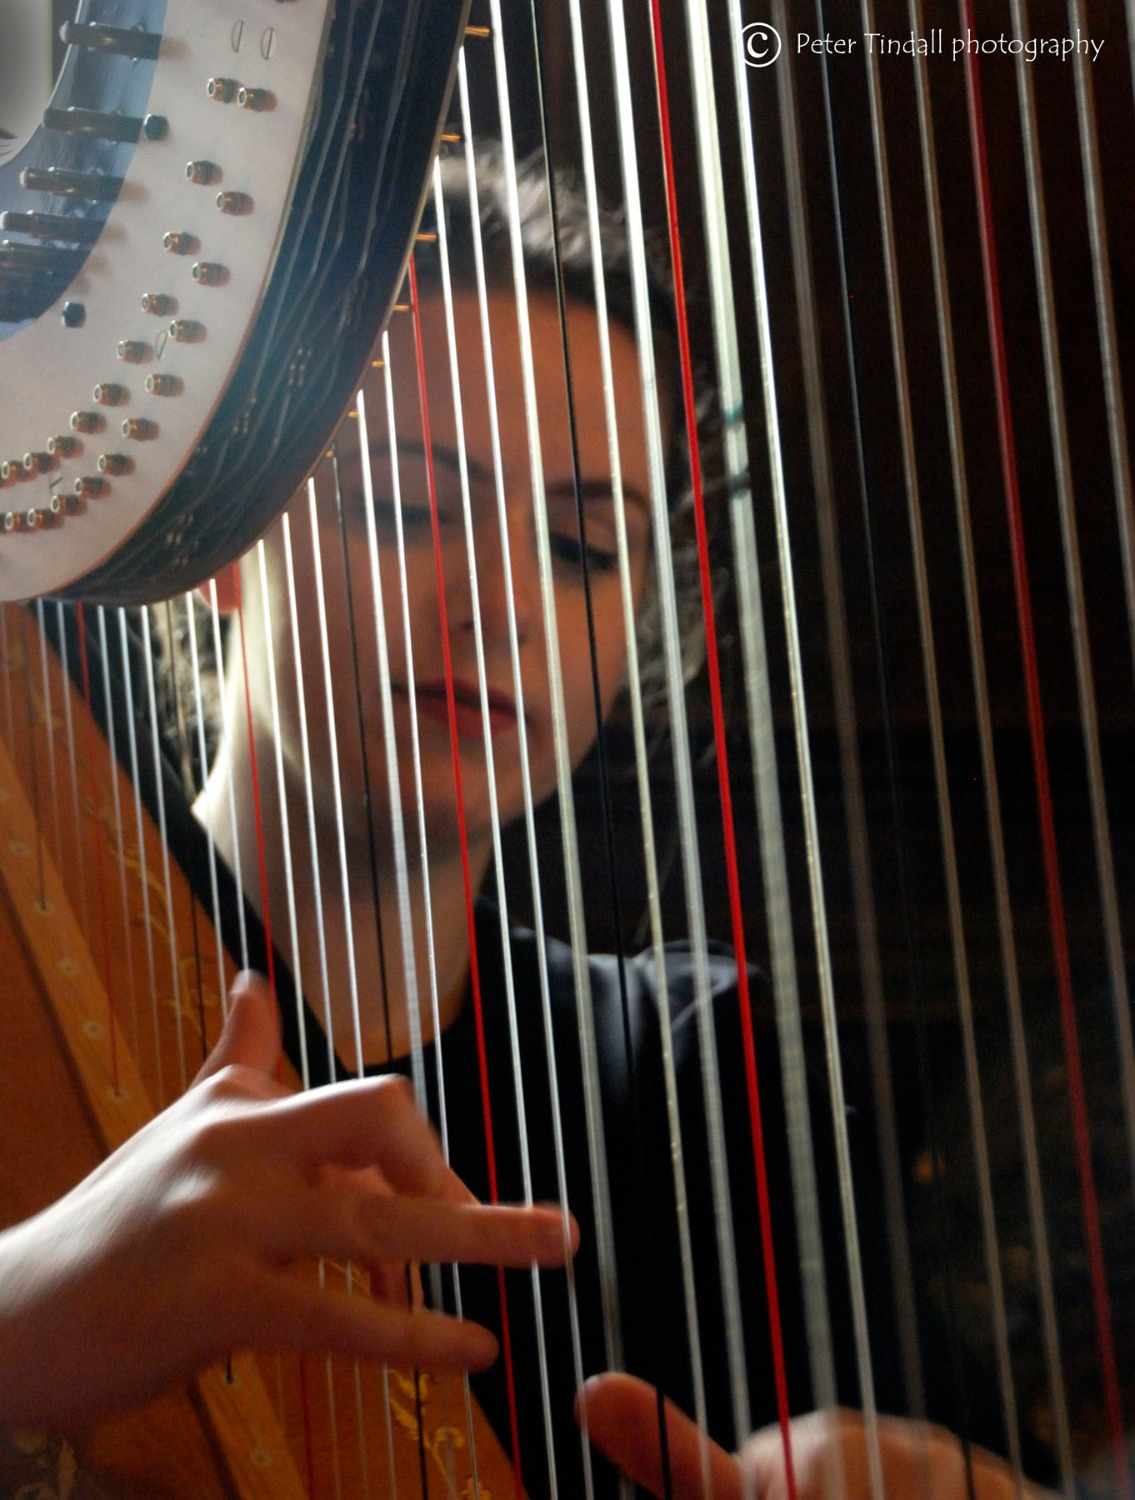 Promo The Function Harpist Harpist Denbigh